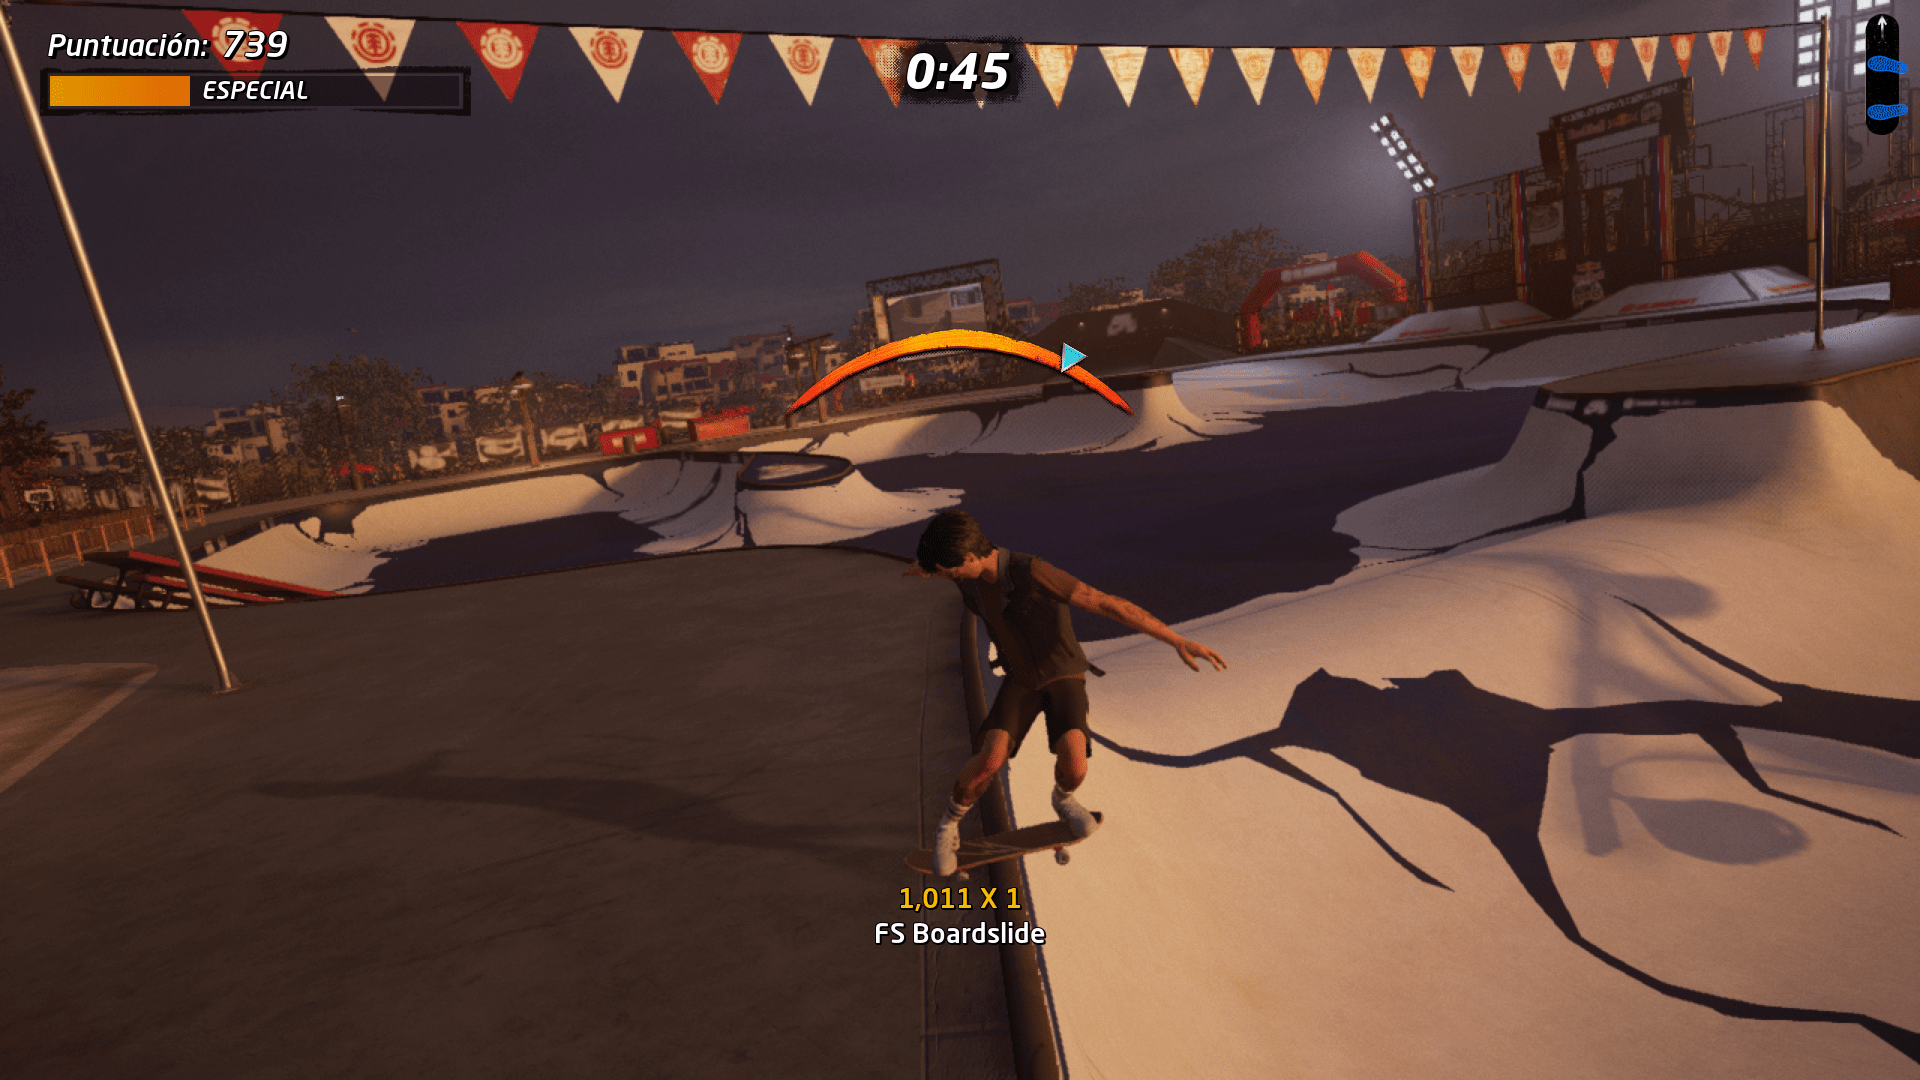 Tony Hawk's Pro Skater 1 + 2: ¿Vale o no la pena? (Review)